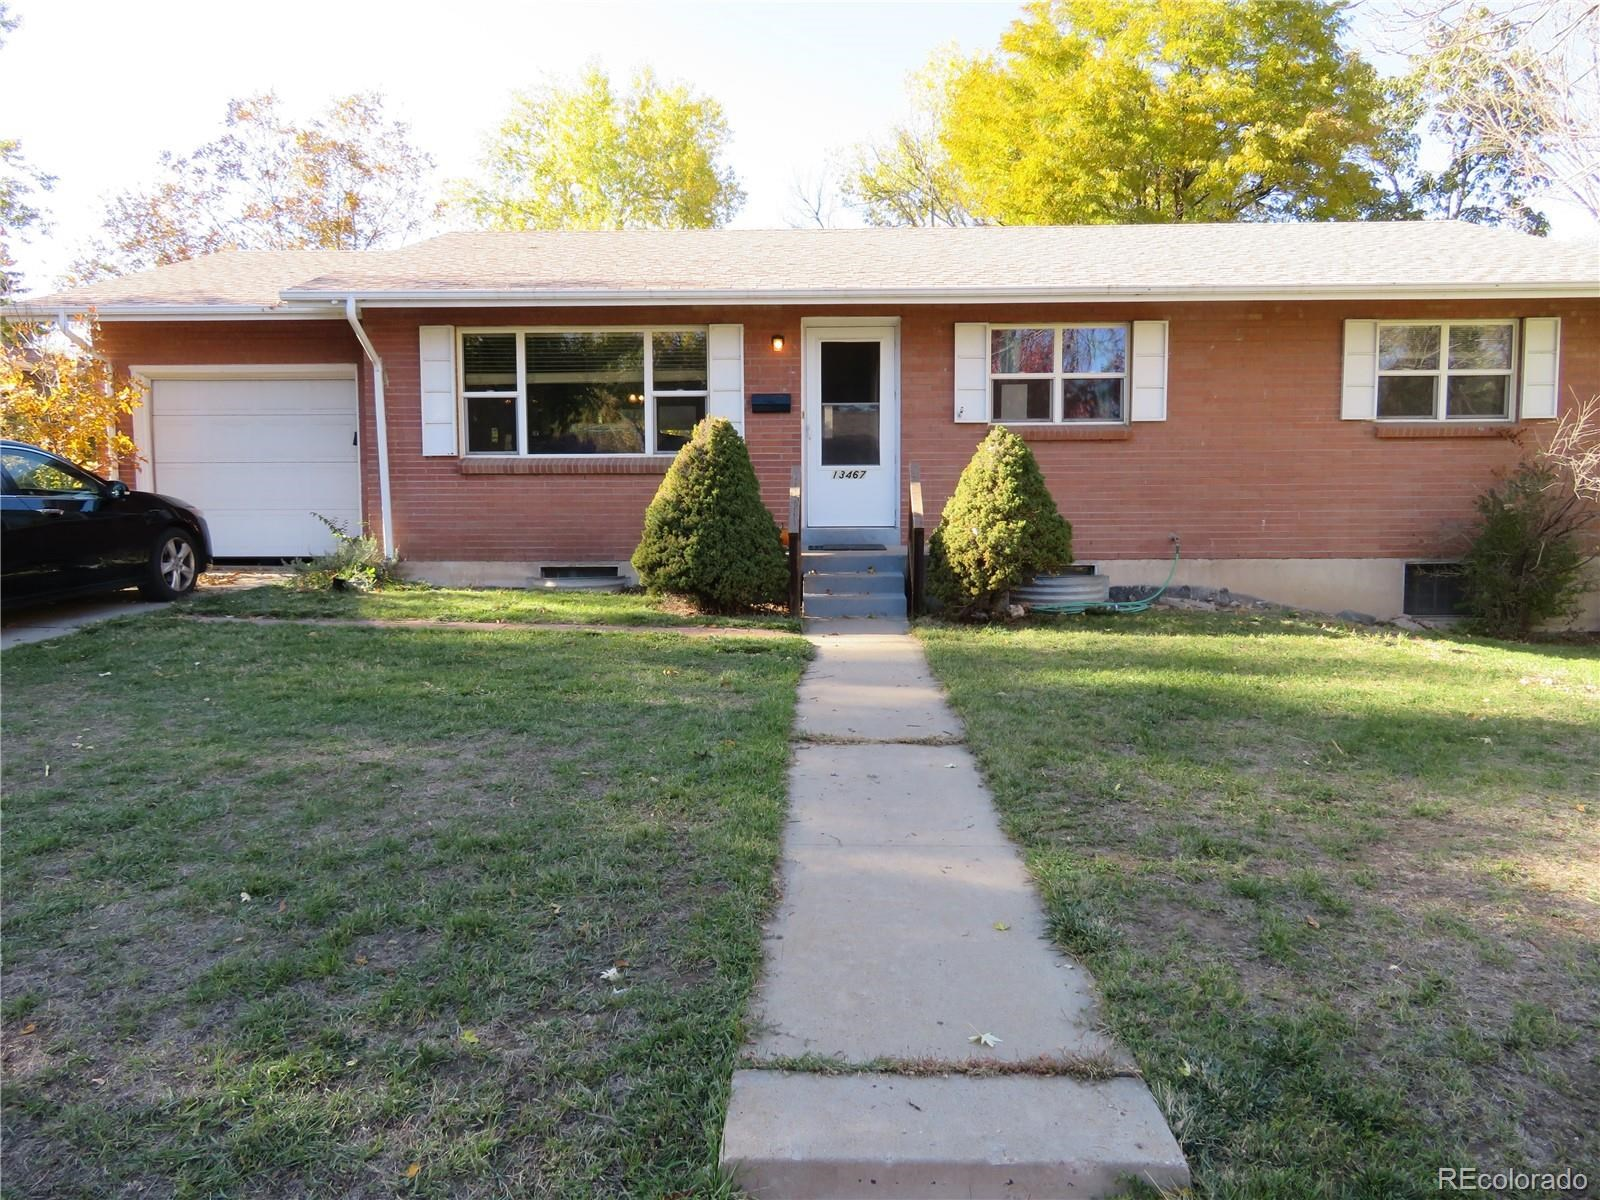 MLS# 3701465 - 1 - 13467 W 22nd Place, Golden, CO 80401